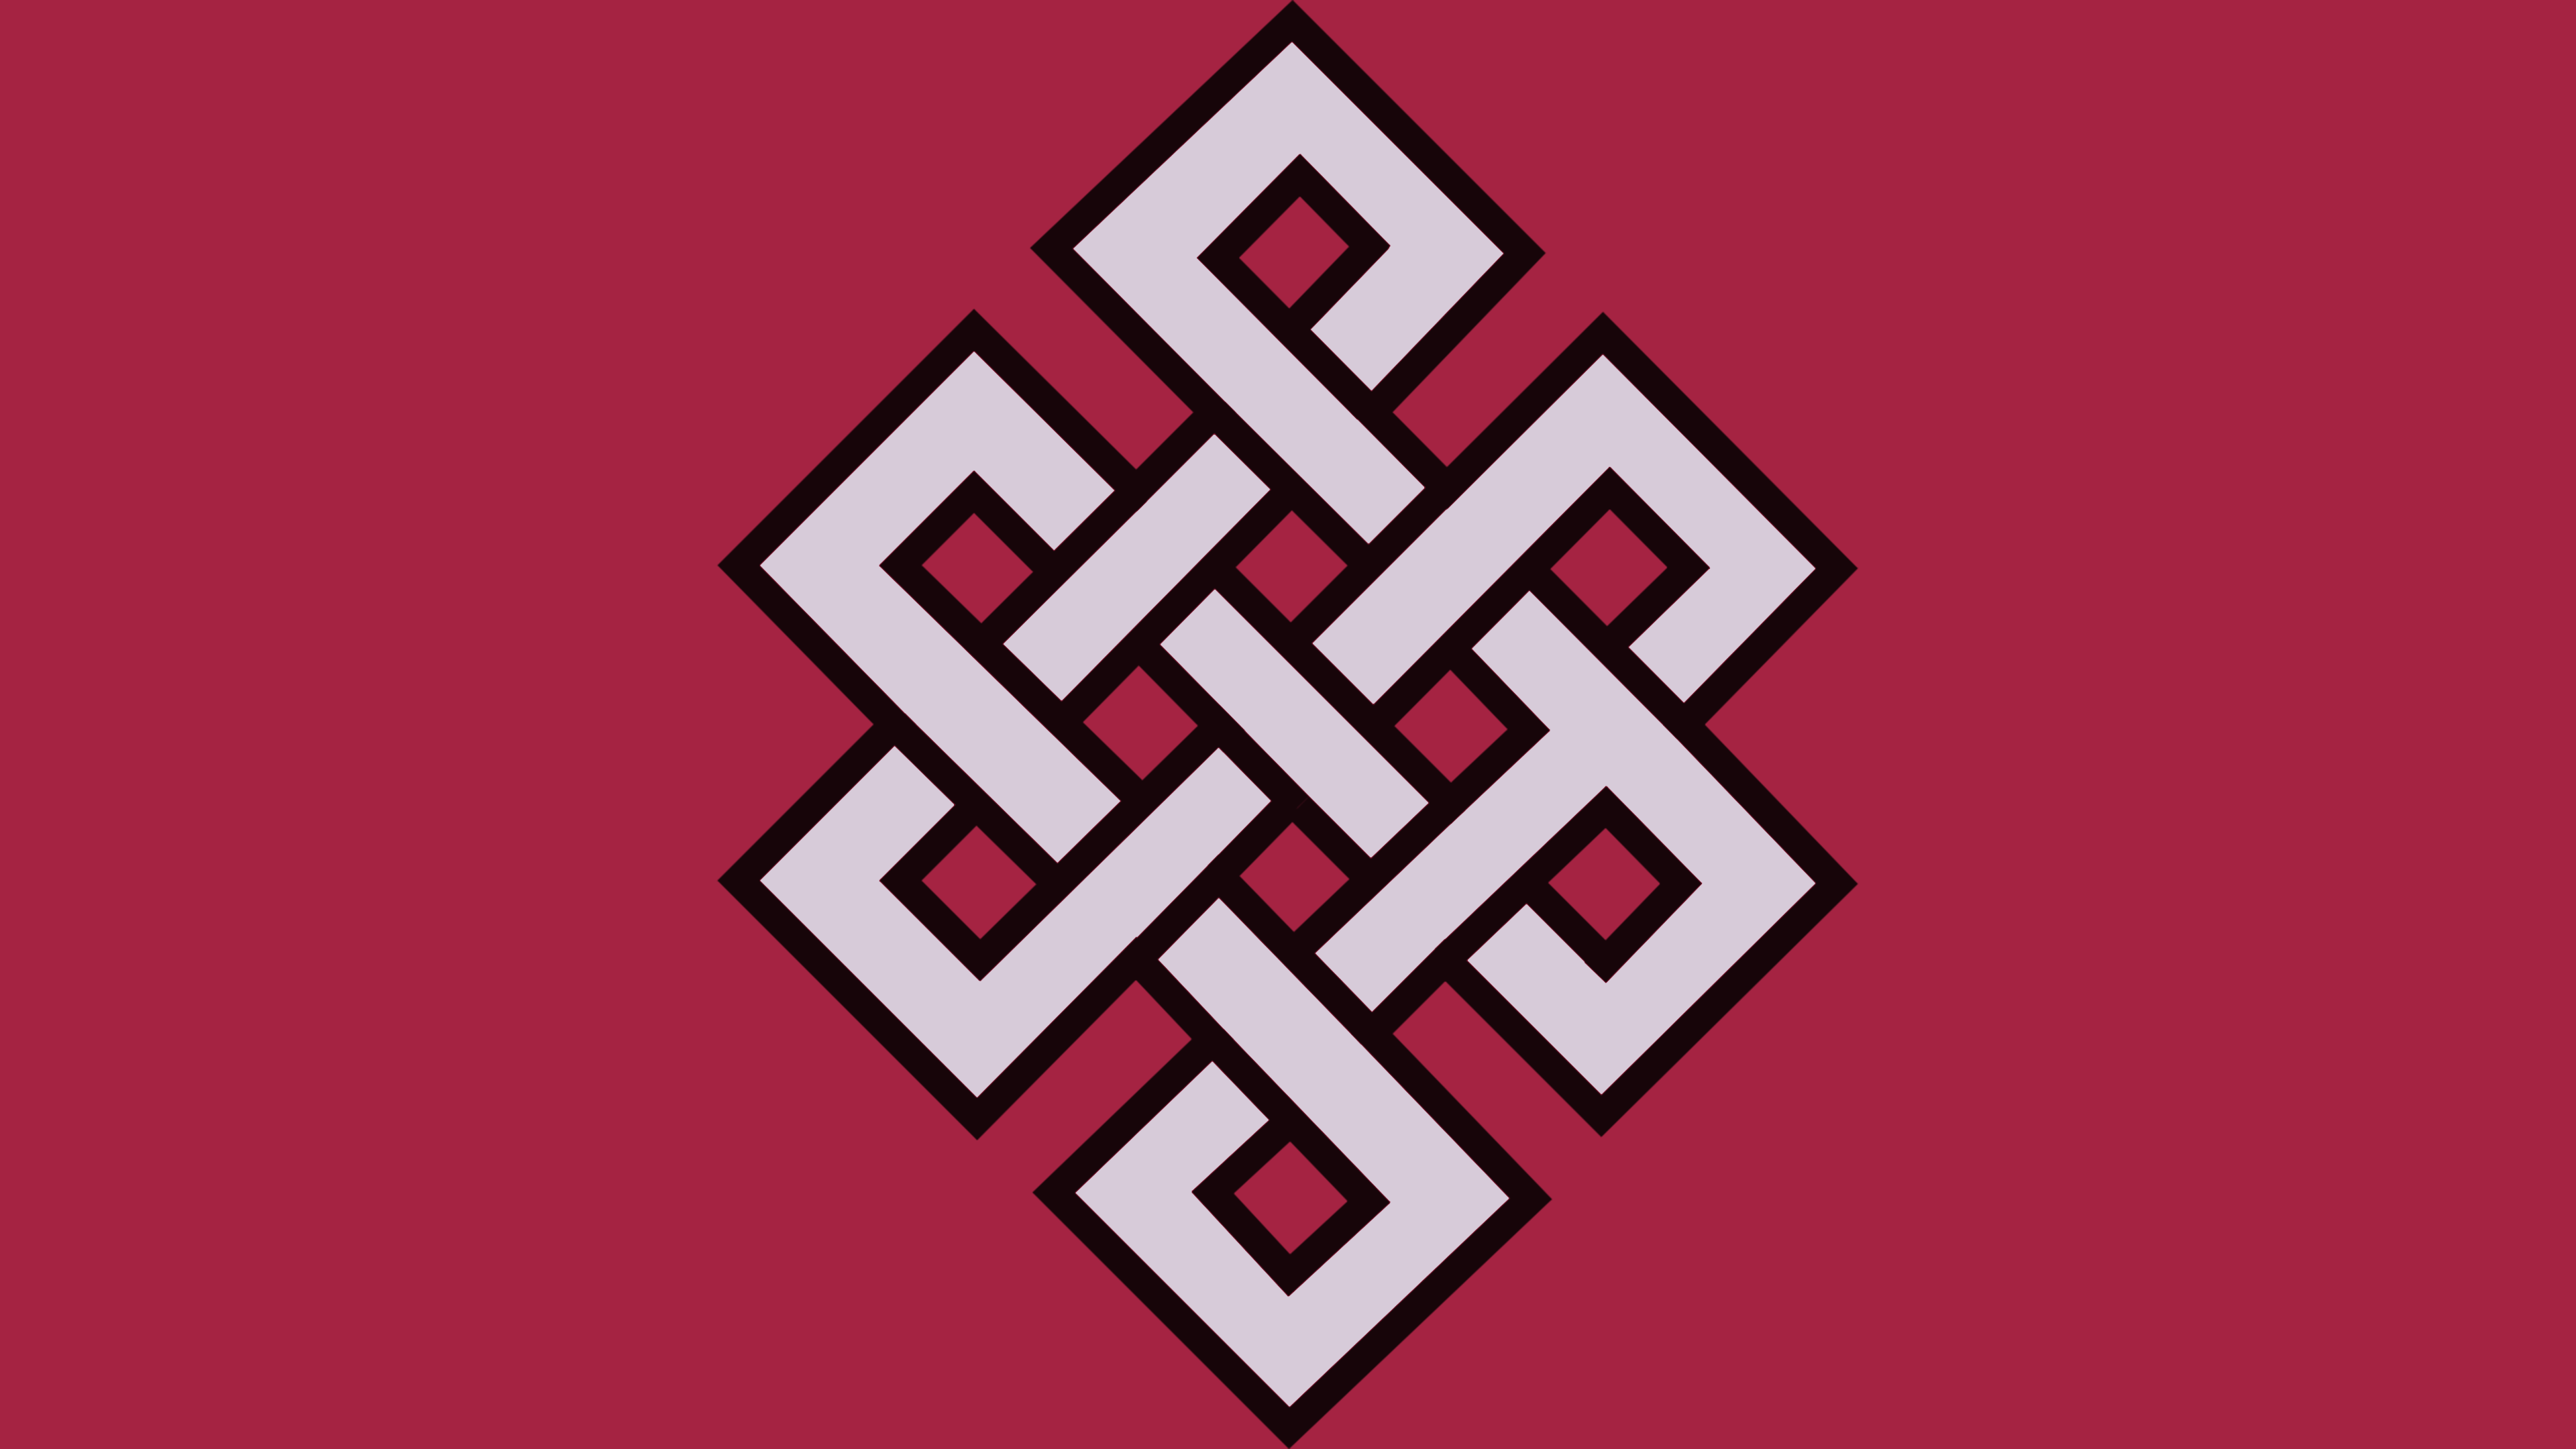 Endless Knot Wallpapers